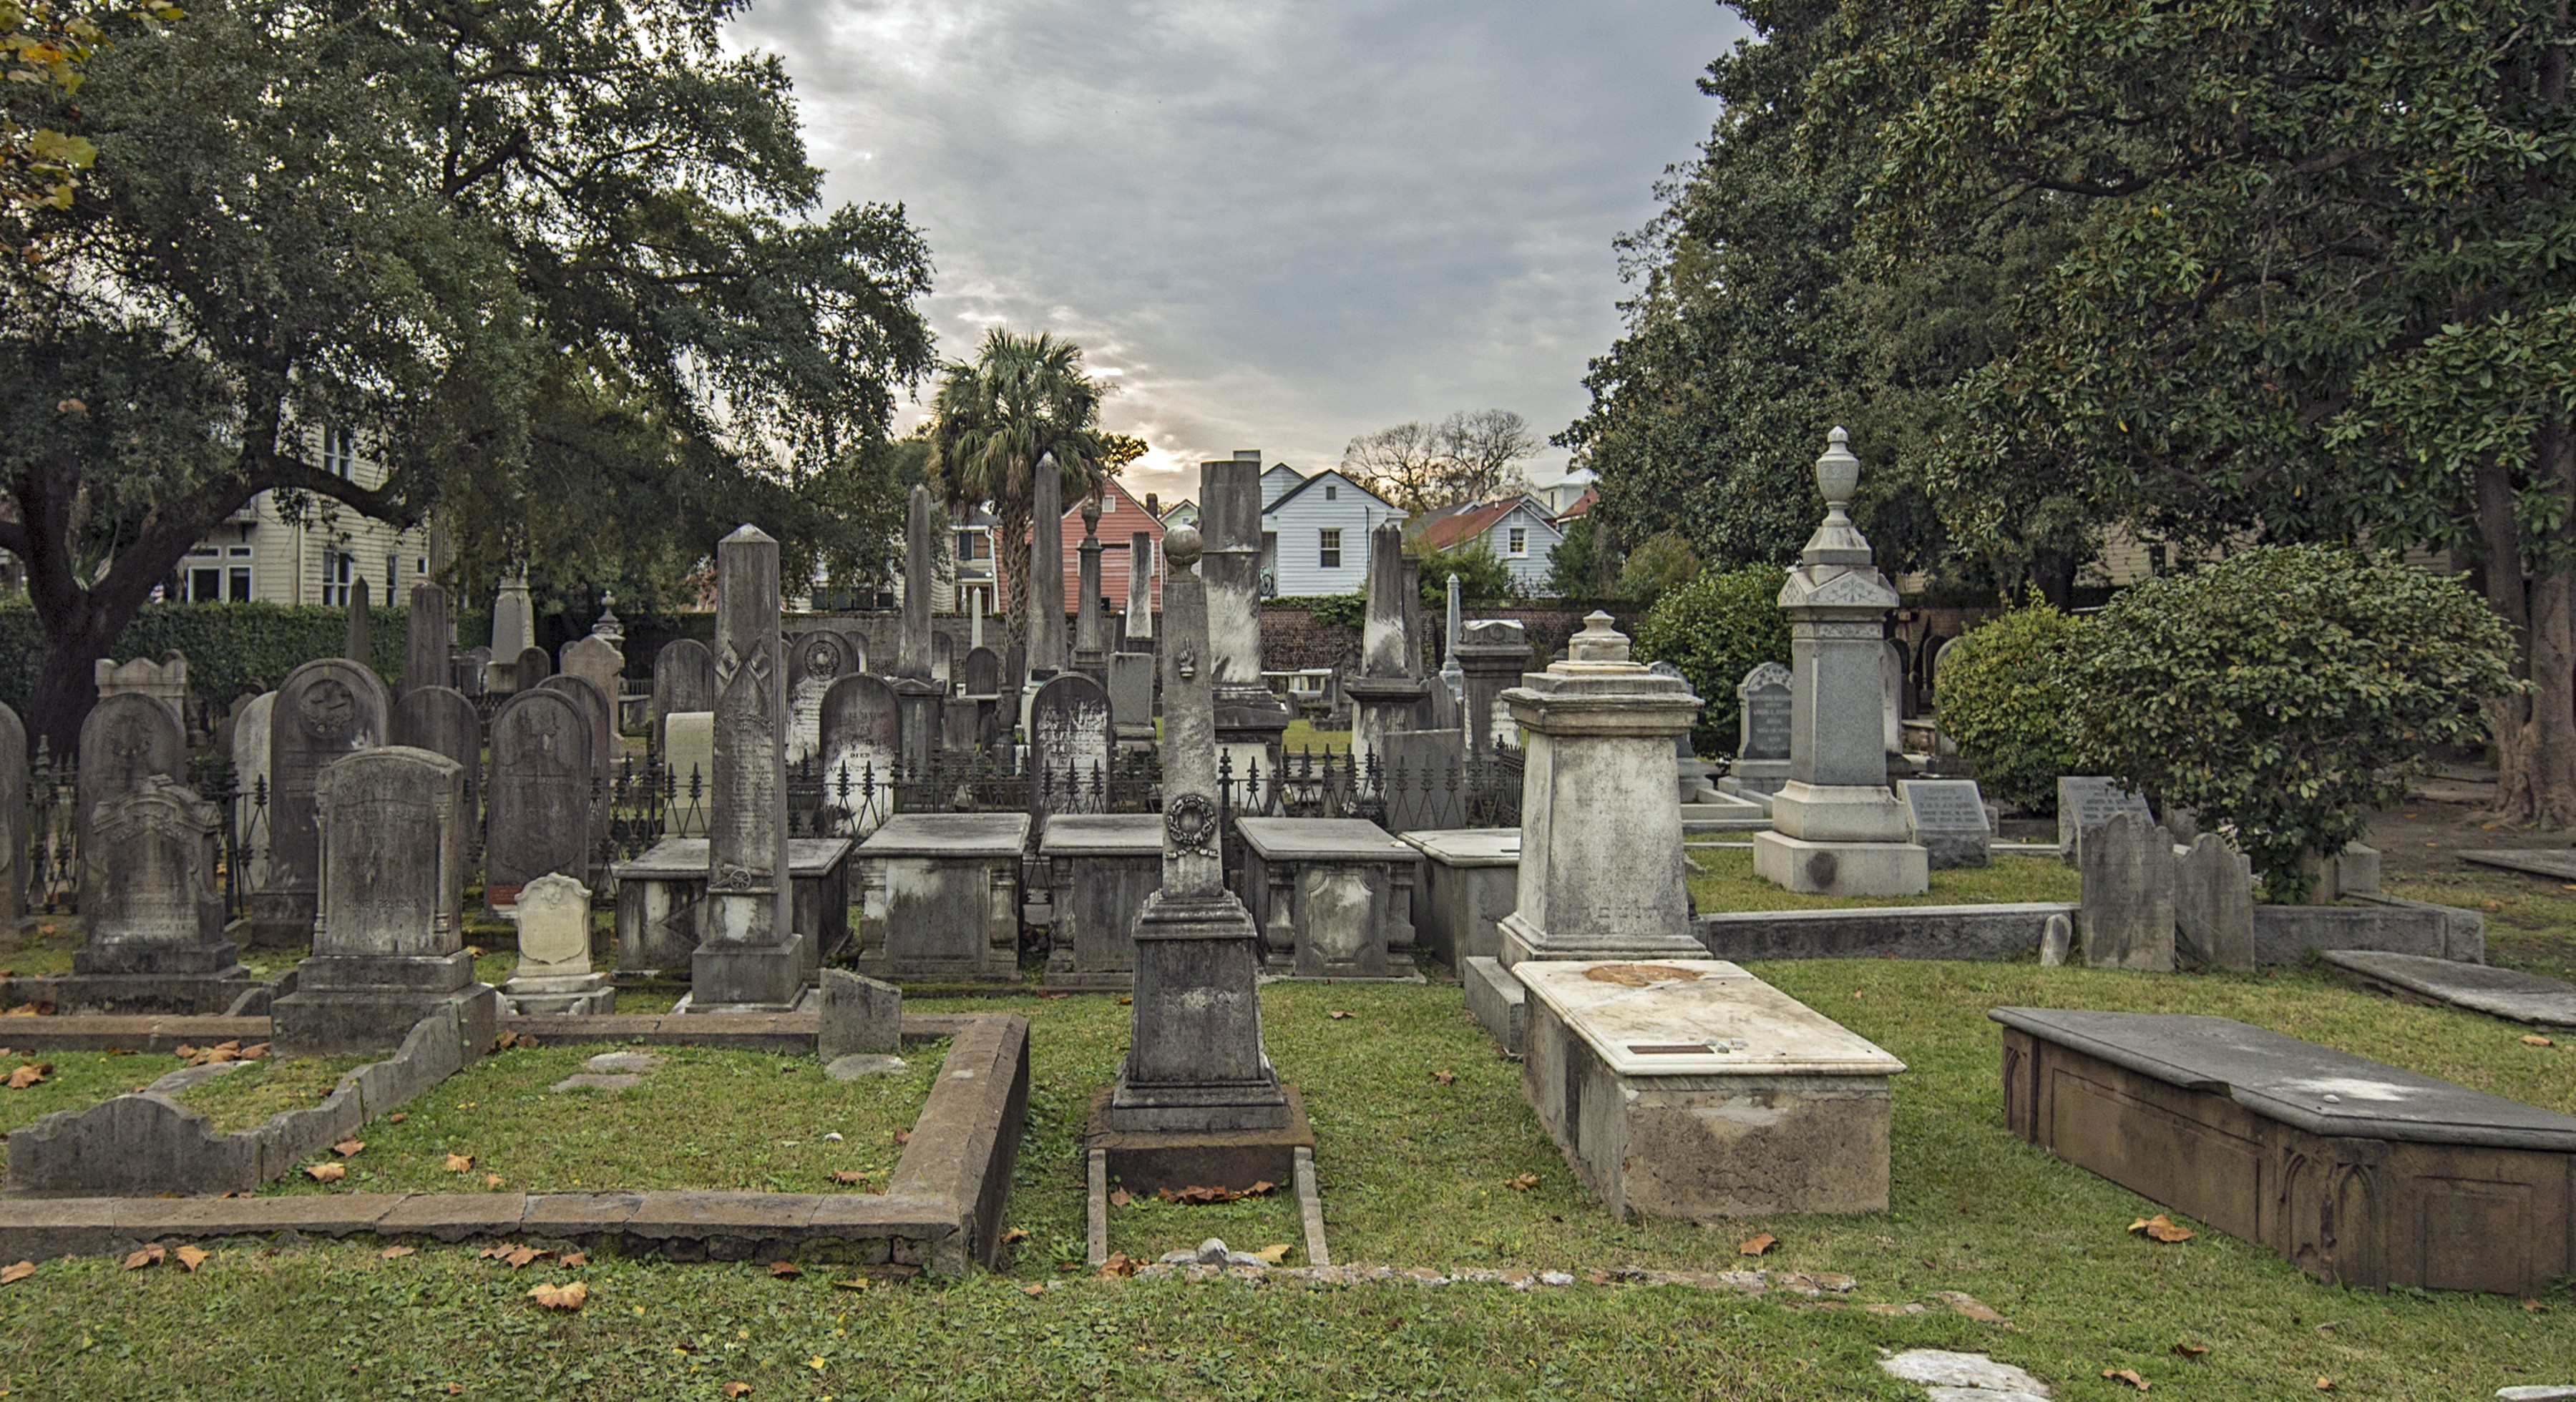 "<a href=""https://www.kkbe.org/cemeteries"""">